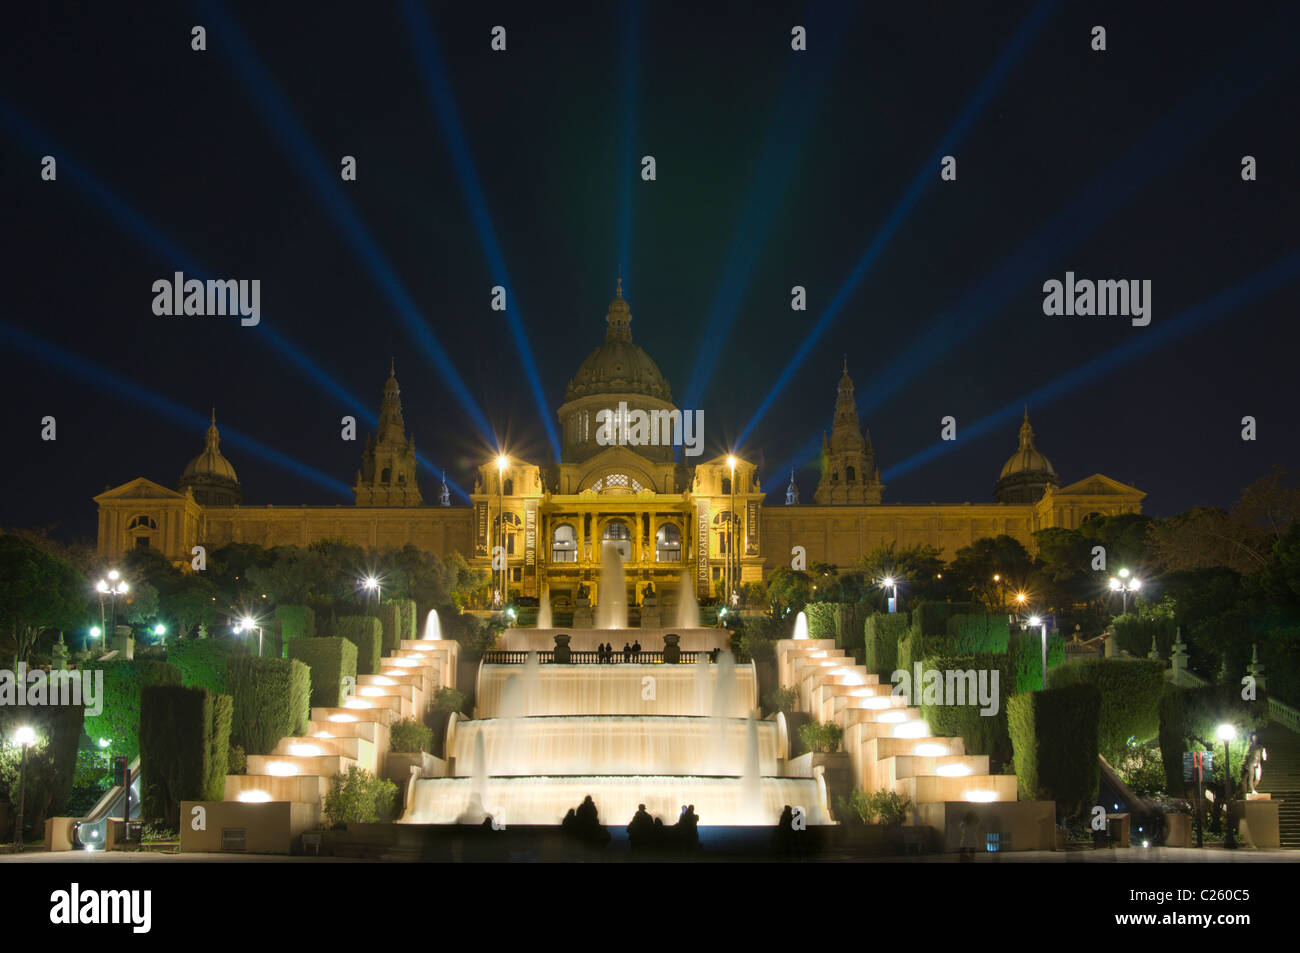 Magic fountain and Palace of Montjuic, Barcelona, Catalonia, Spain - Stock Image